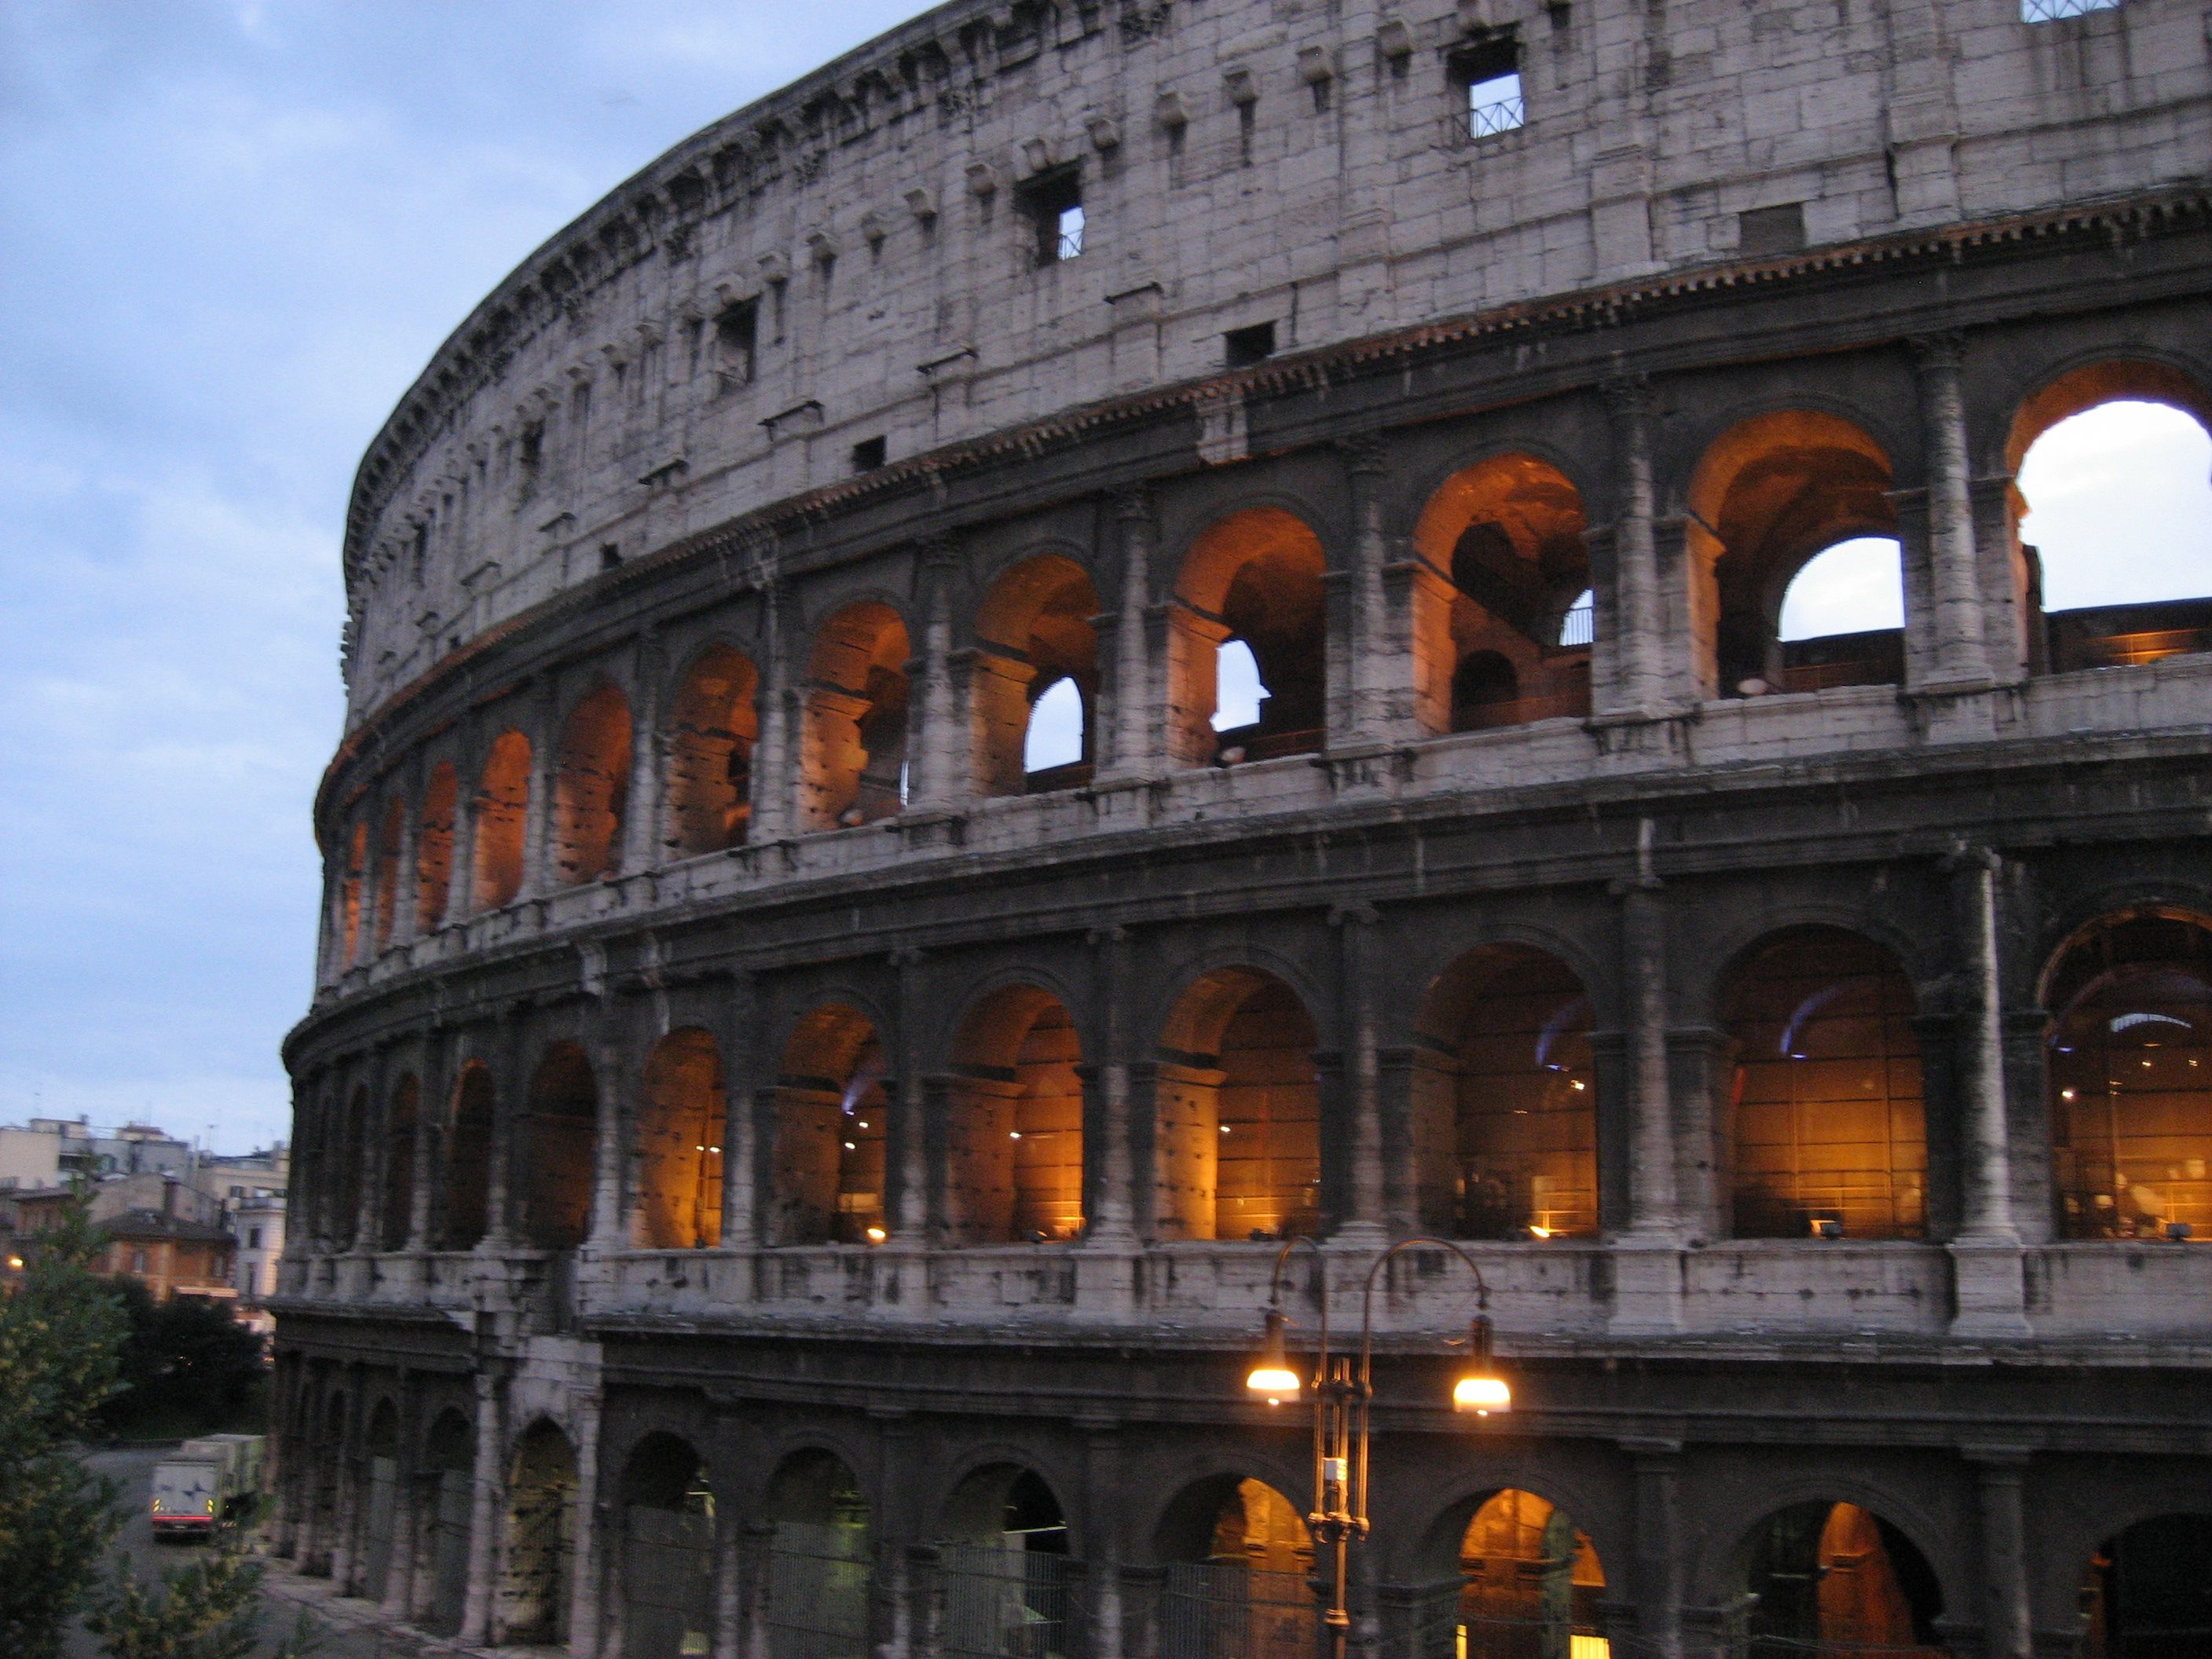 The Colosseum in Rome, opened in 80AD